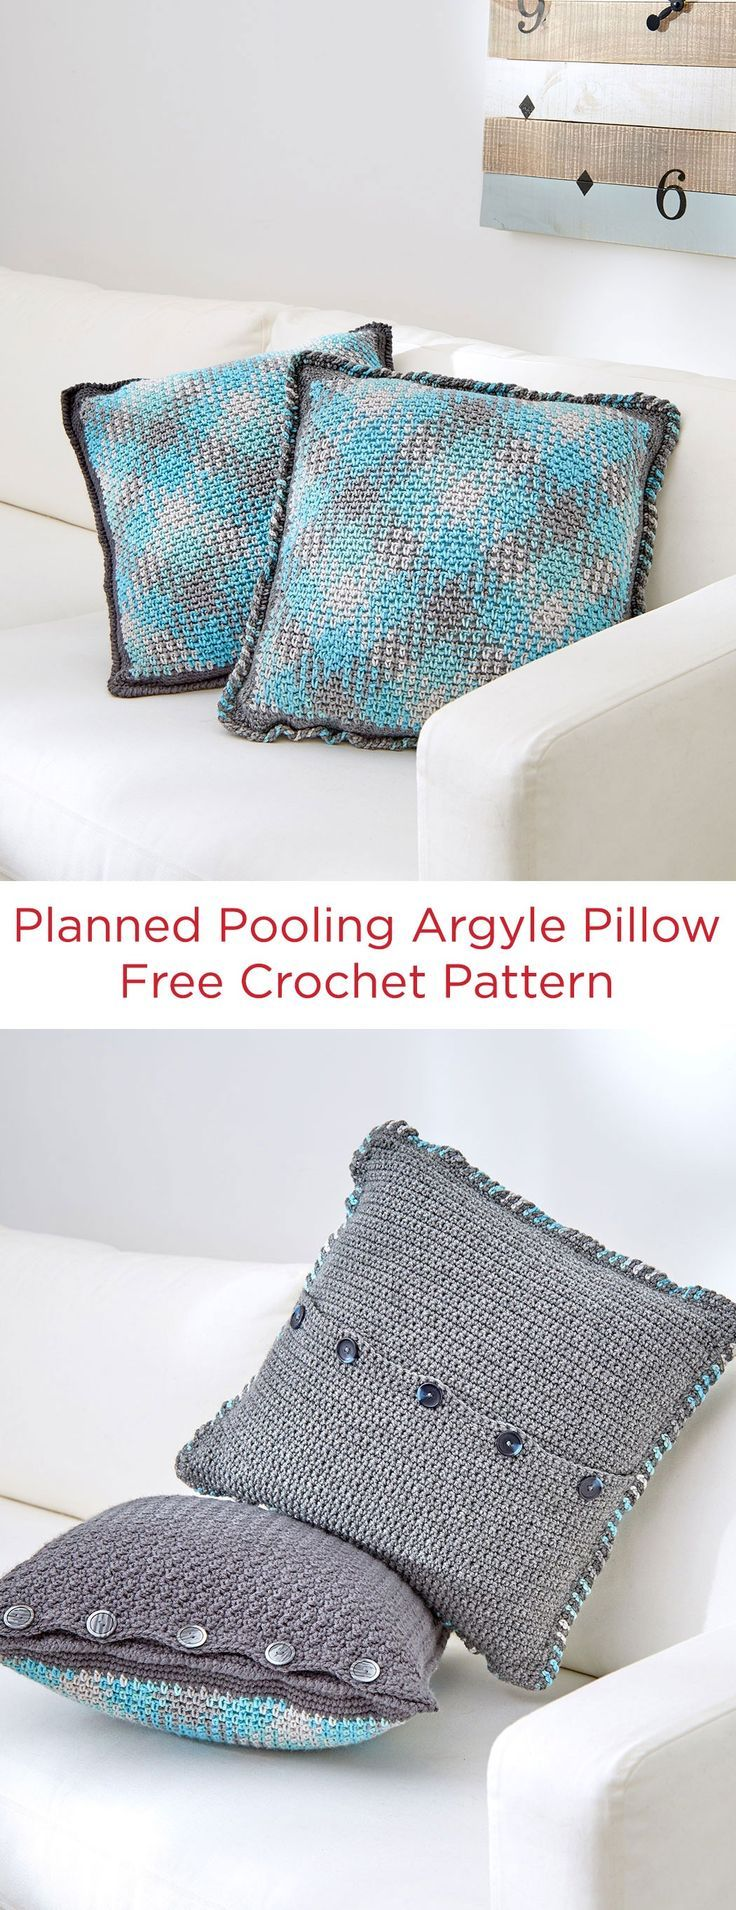 901 best Haken images on Pinterest | Crochet patterns, Appliques and ...